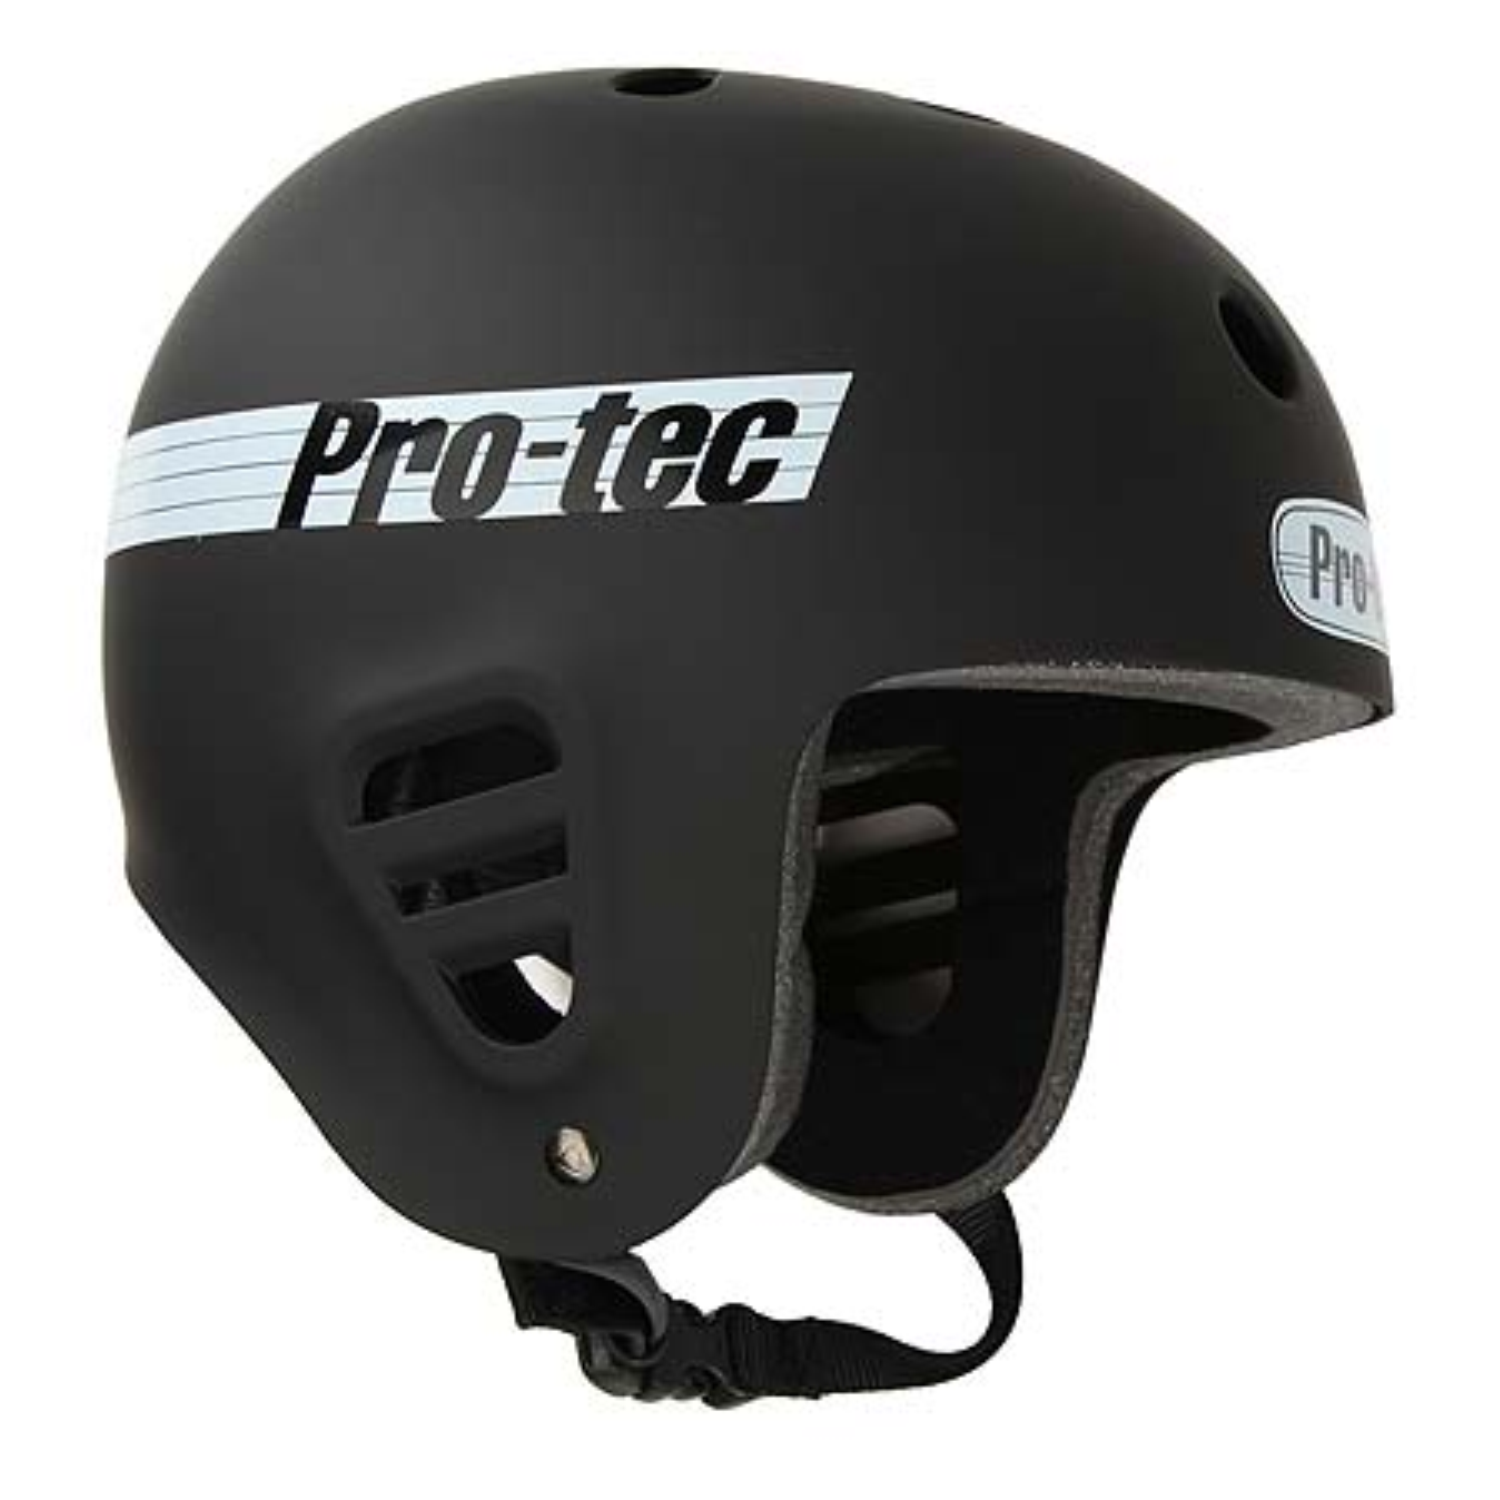 Casco Pro-tec Full Cut rubber black